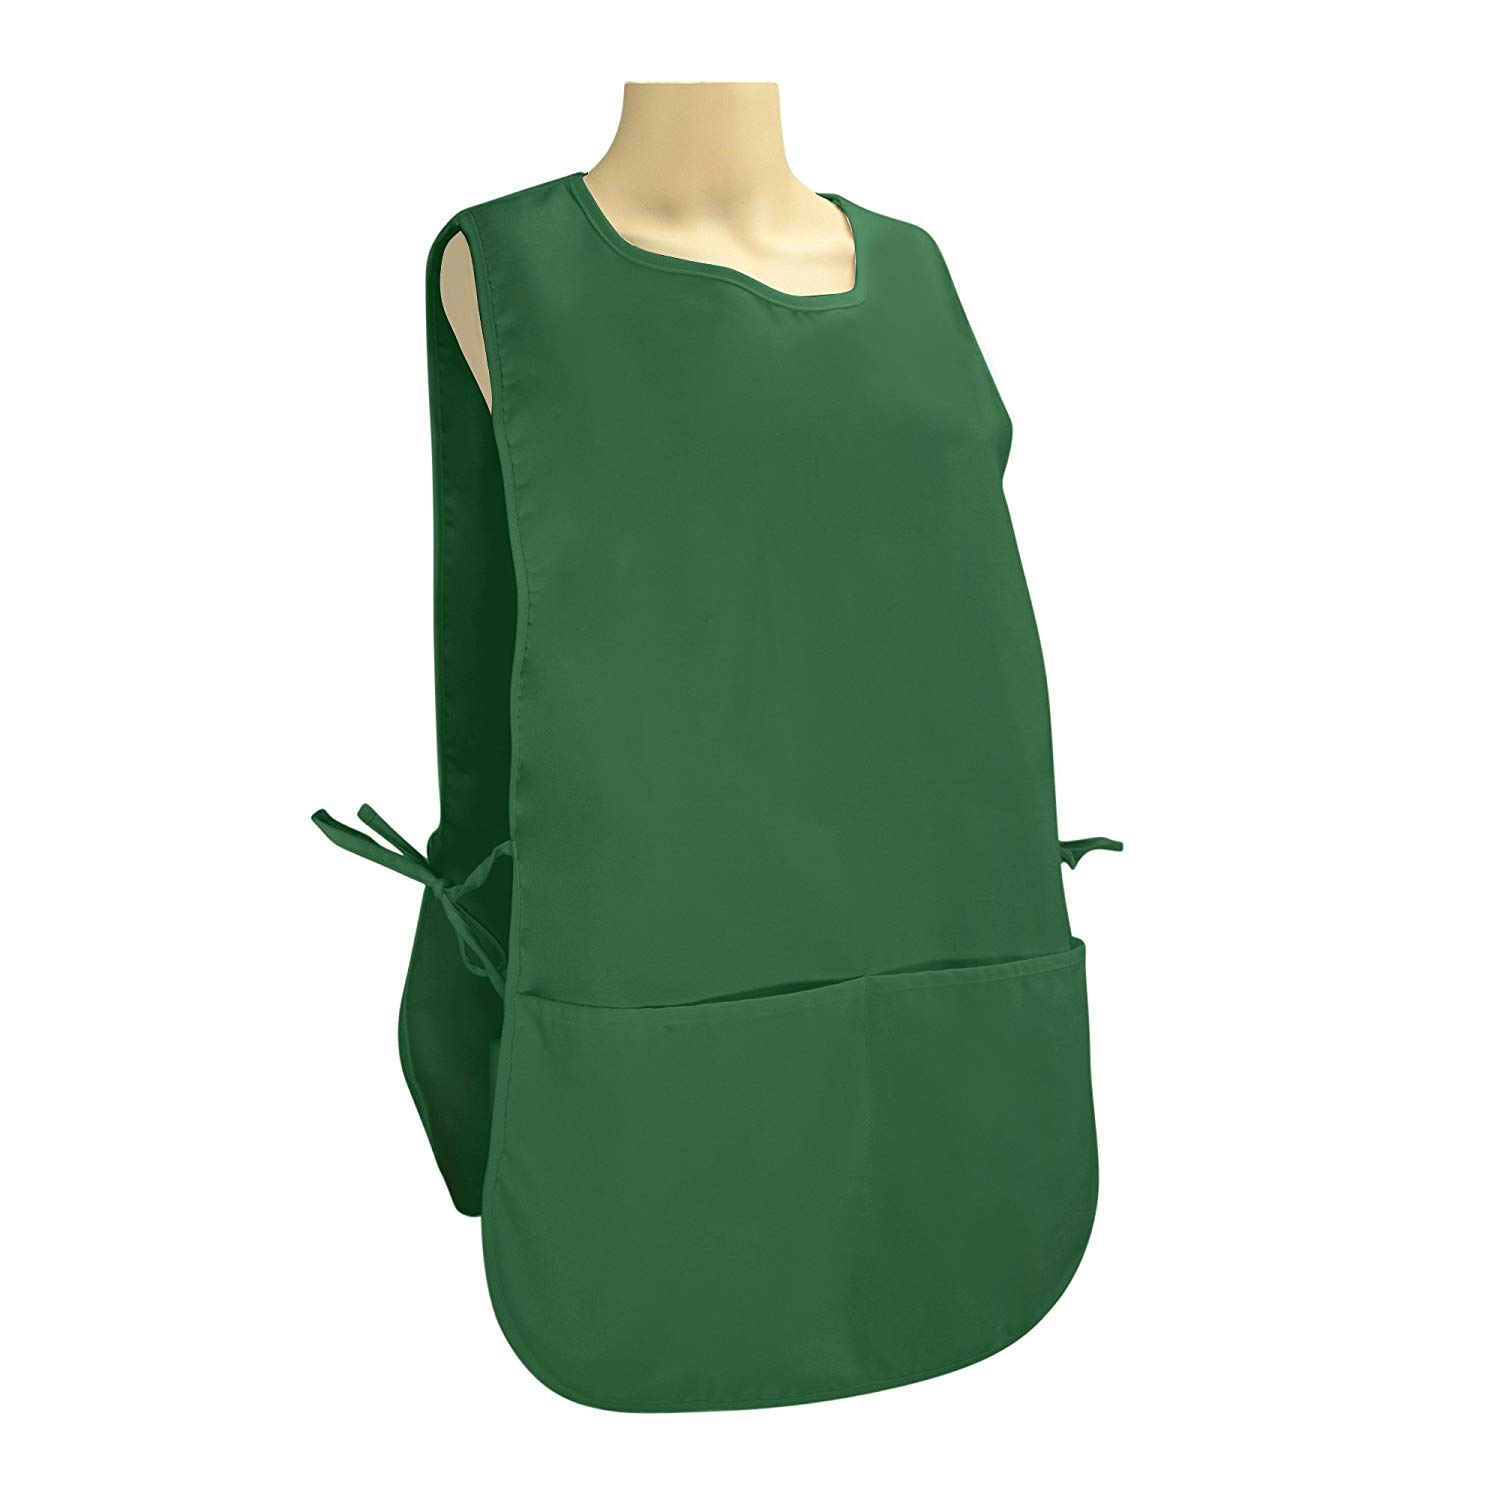 "DALIX Cobbler Apron 2 Pockets Smock Regular 28.5"" x 18.5"" Poly Cotton Black White (1, Dark Green)"